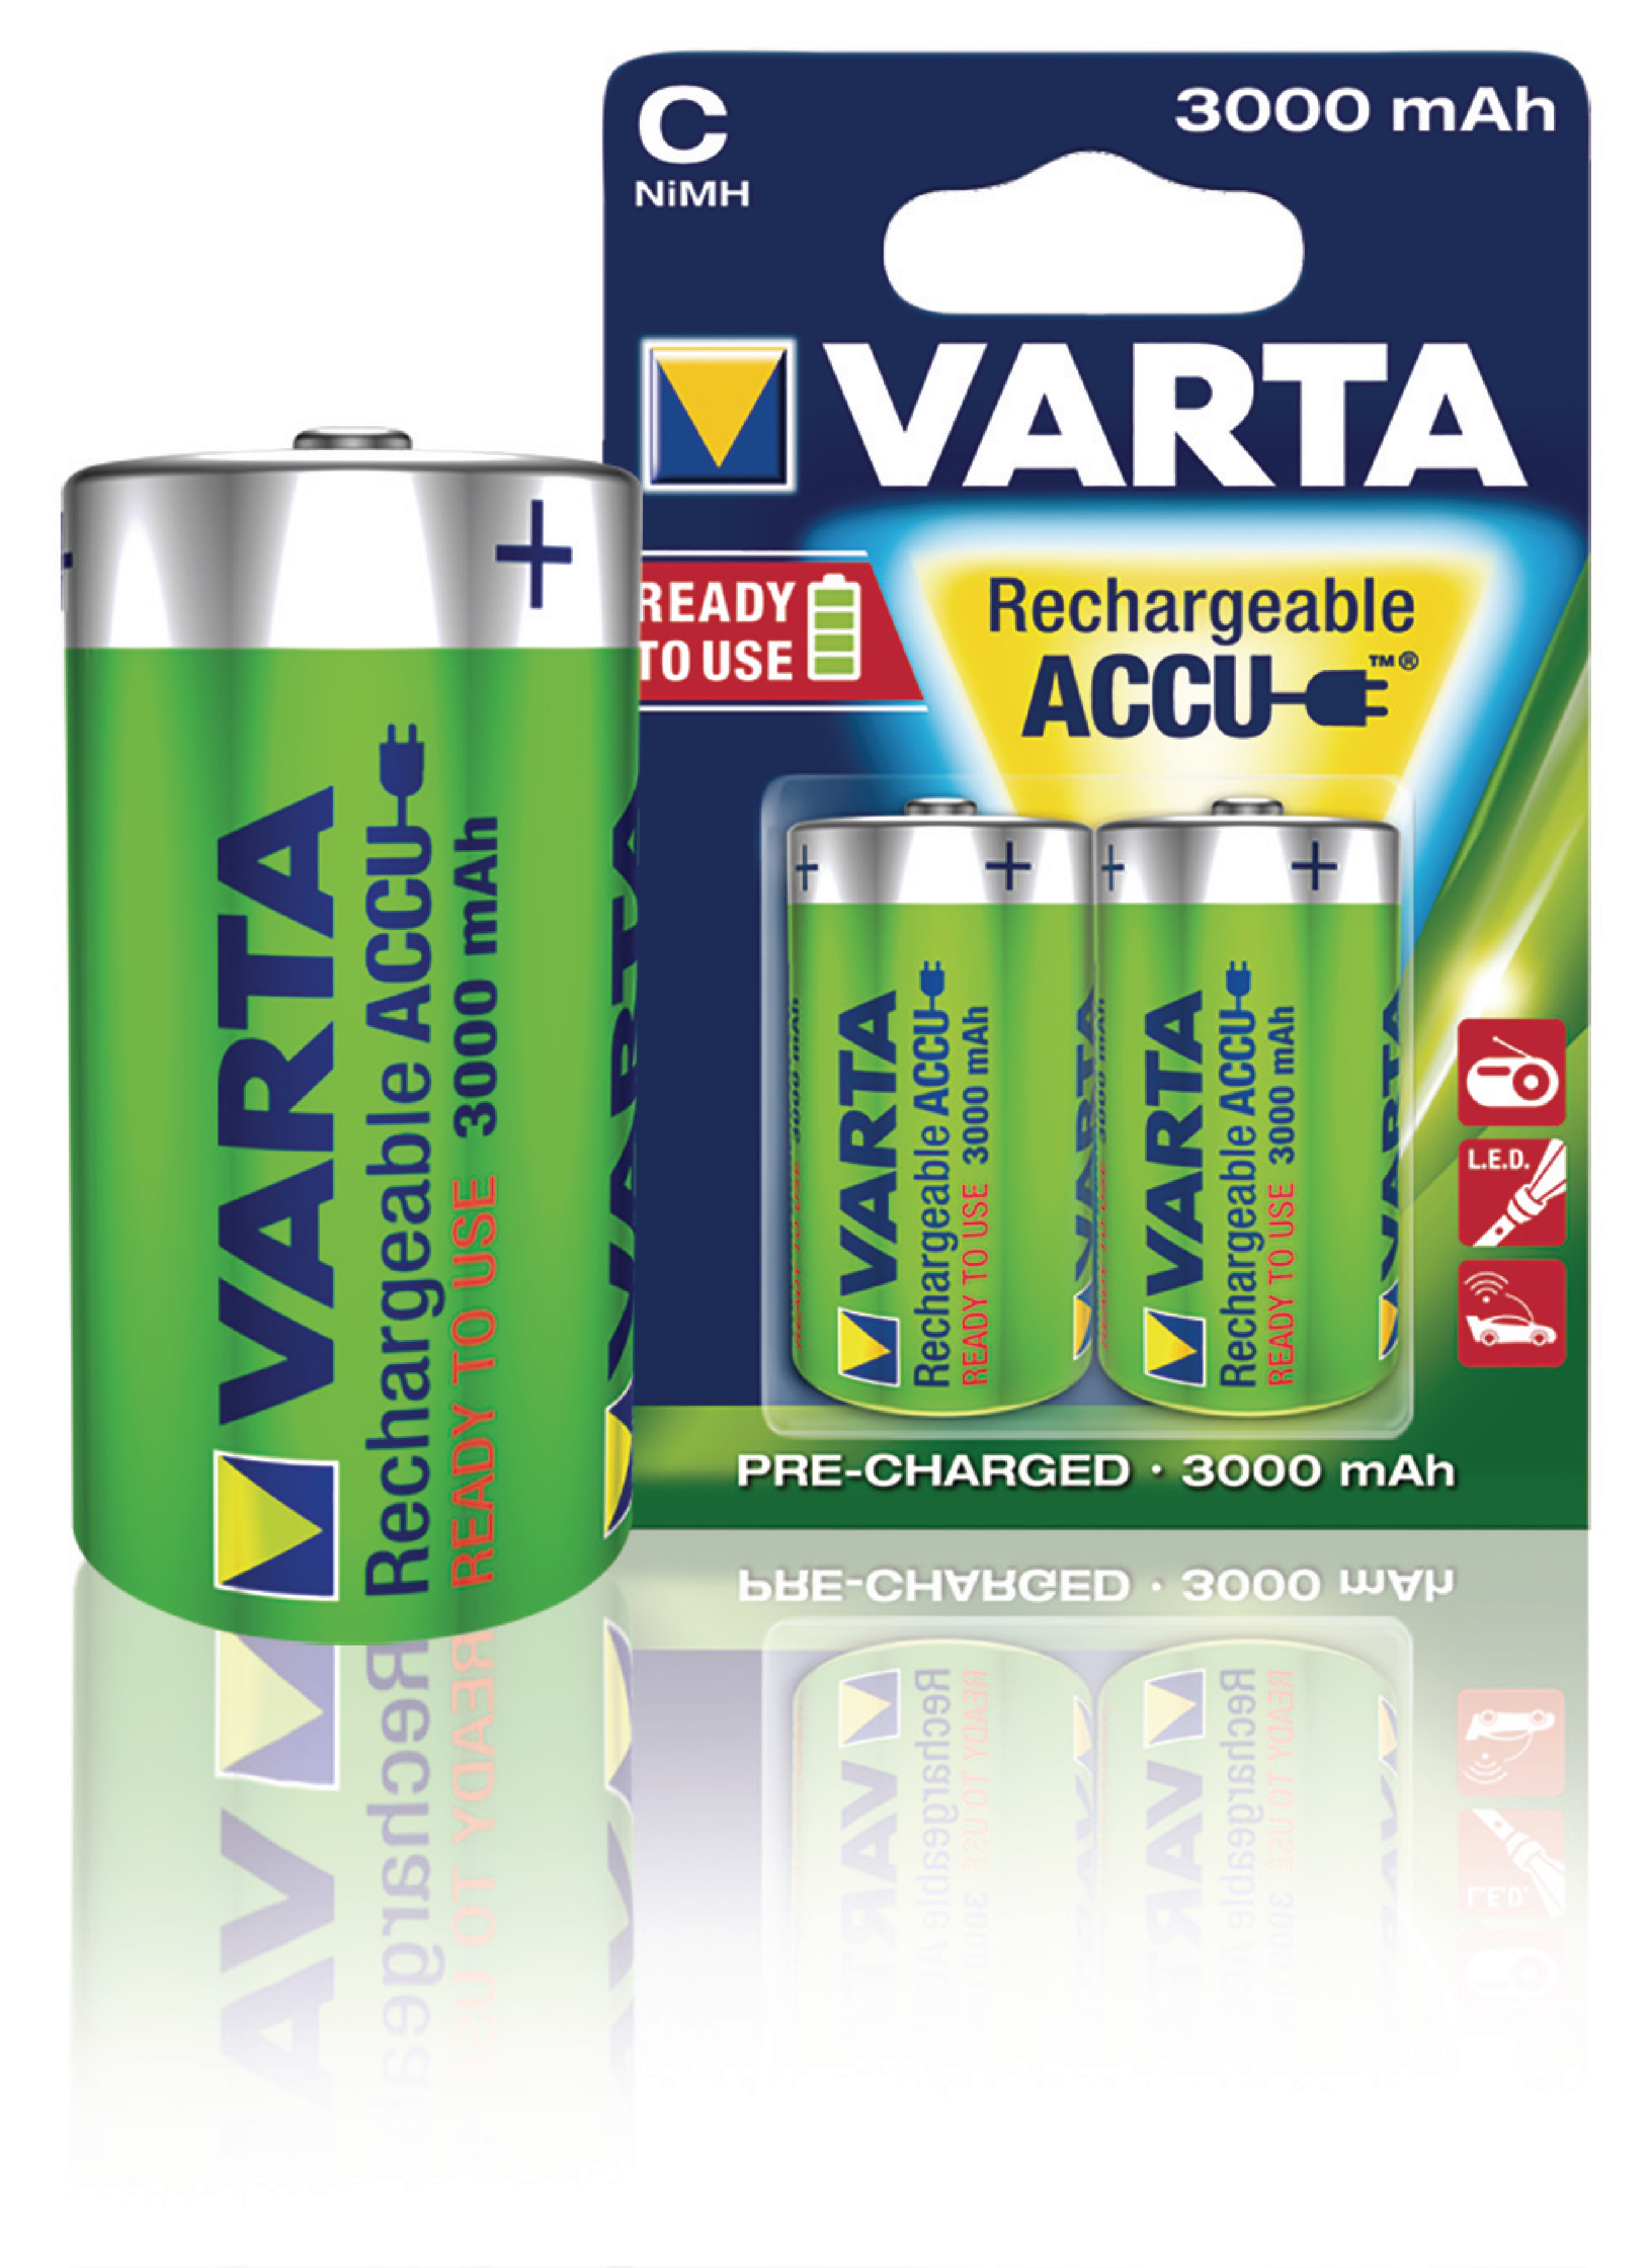 varta 56714b varta rechargeable nimh battery c 1 2 v. Black Bedroom Furniture Sets. Home Design Ideas